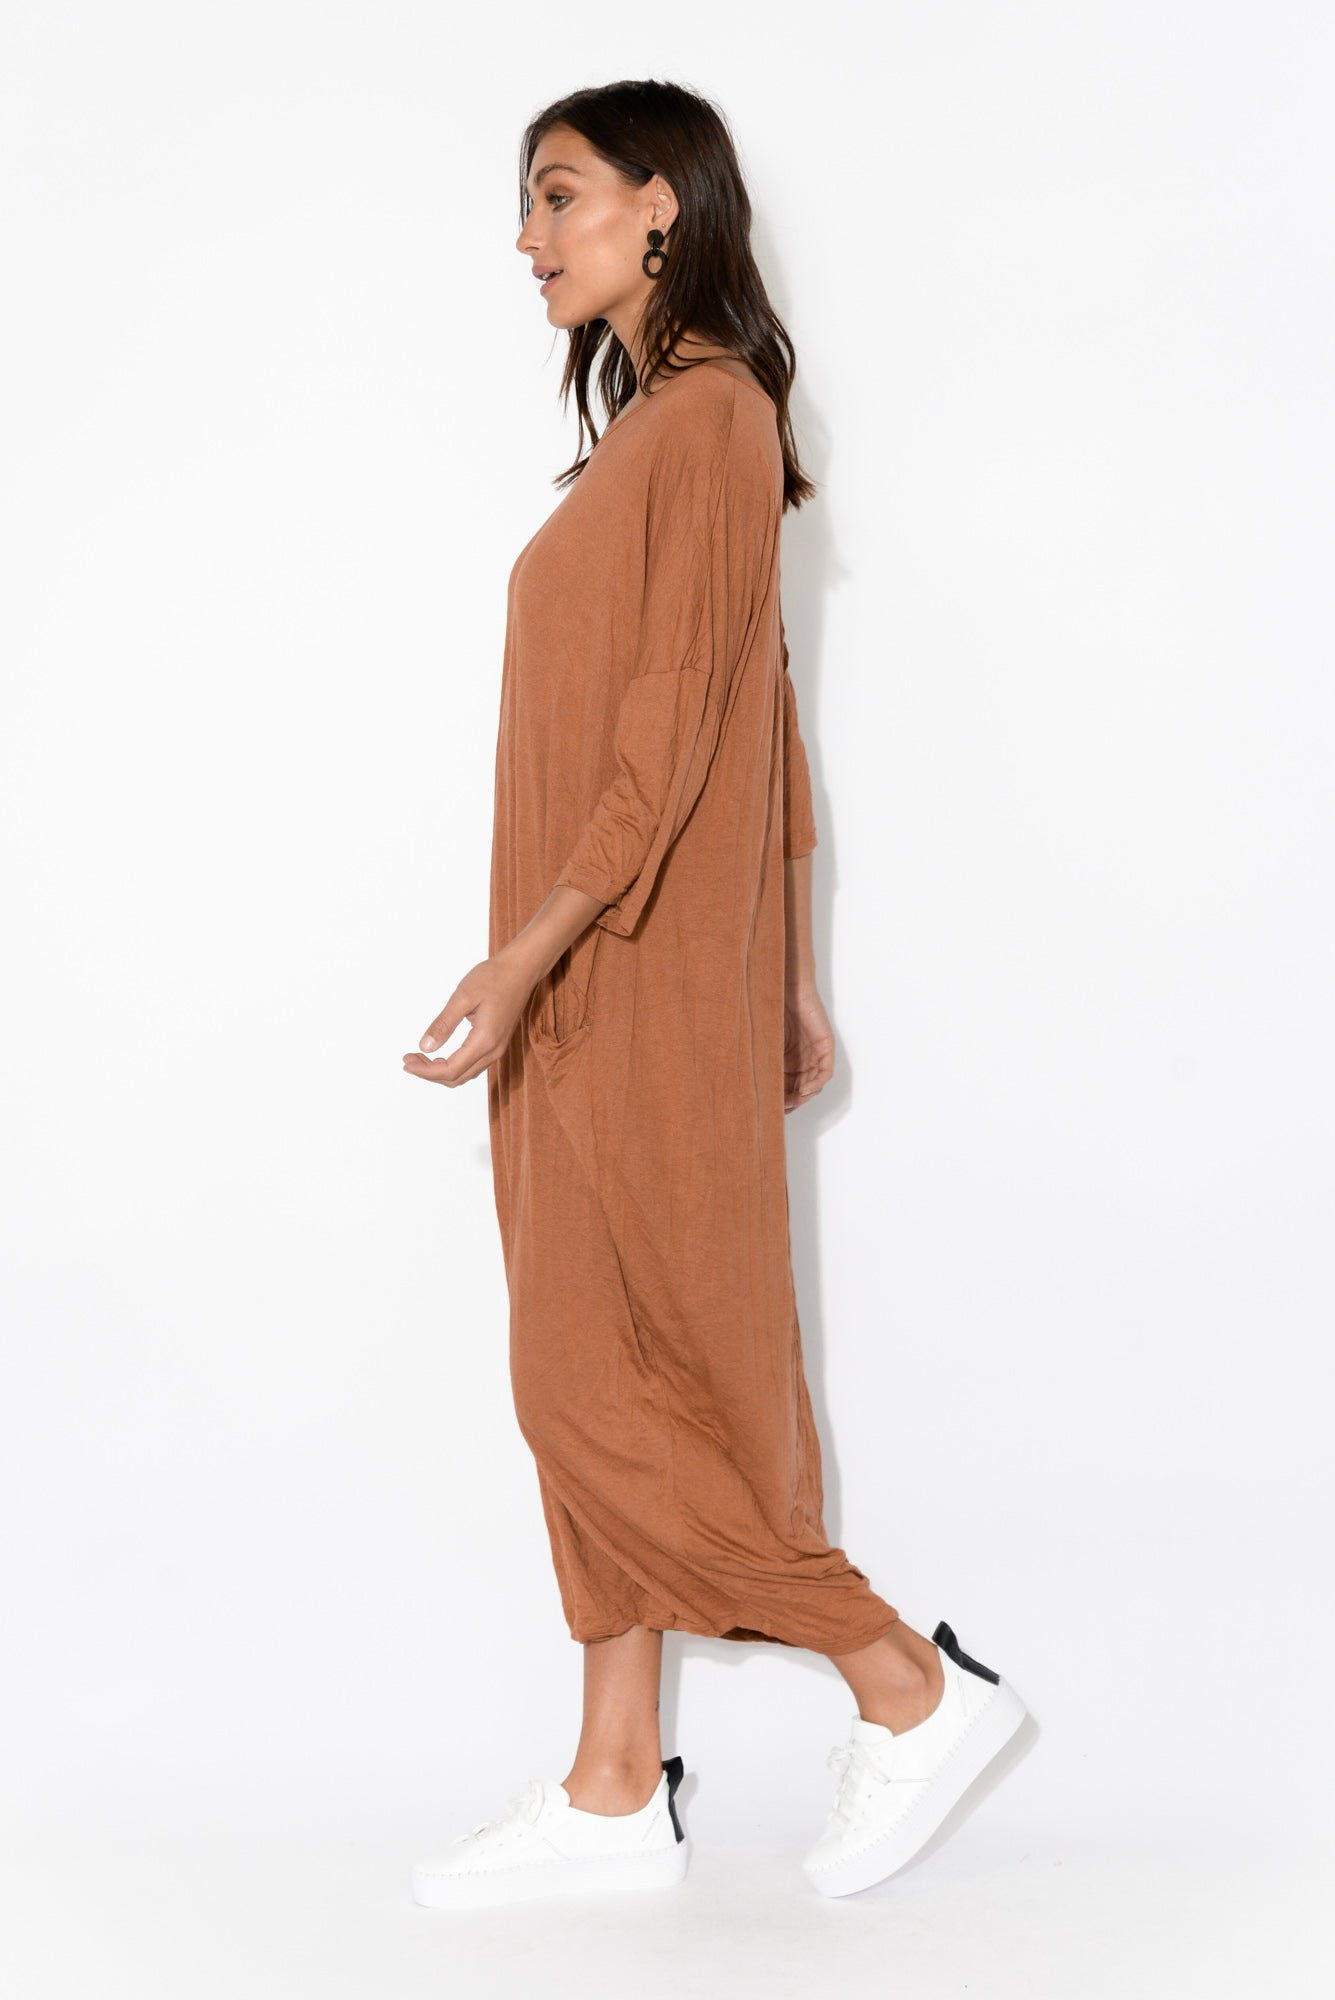 Rust Sleeved Pocket Cotton Dress